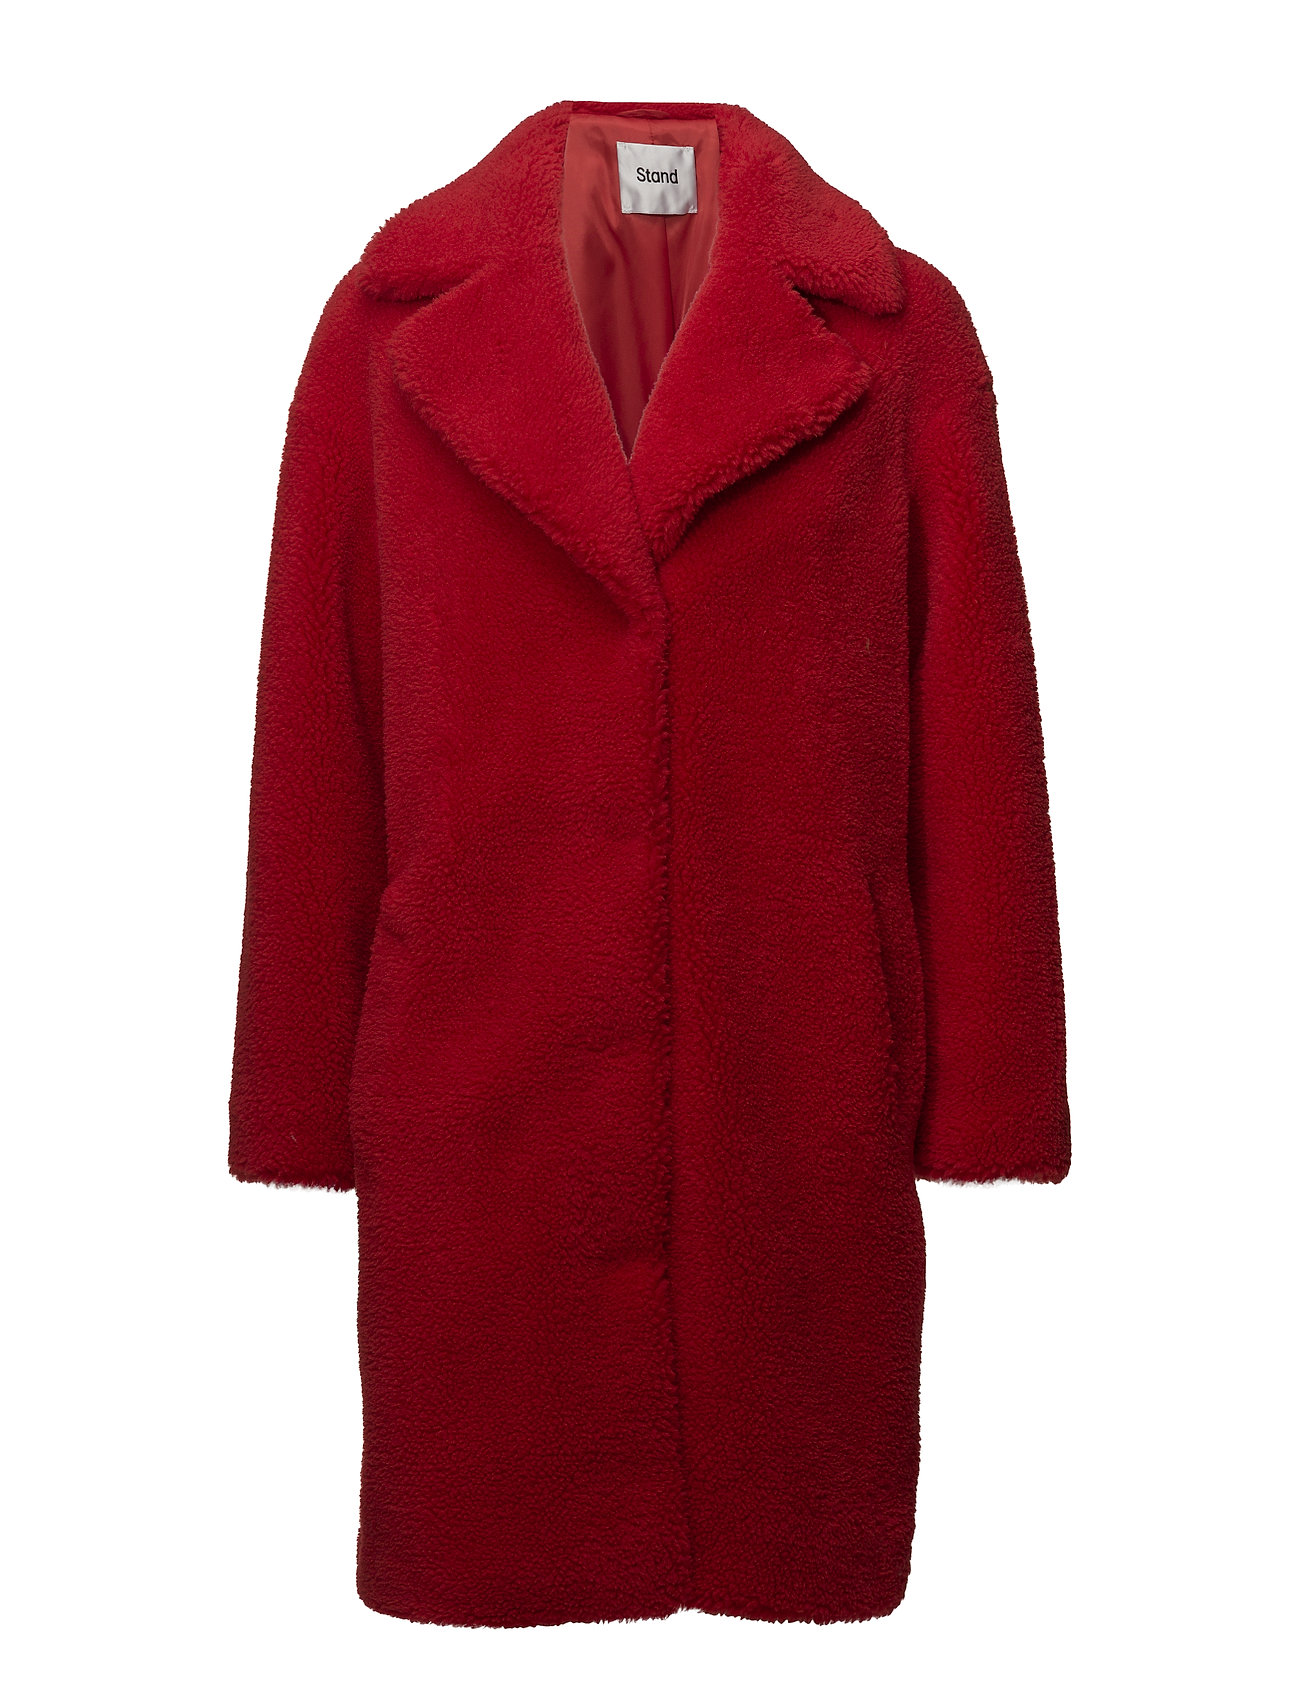 Image of Camille Coocon Coat (3073371239)